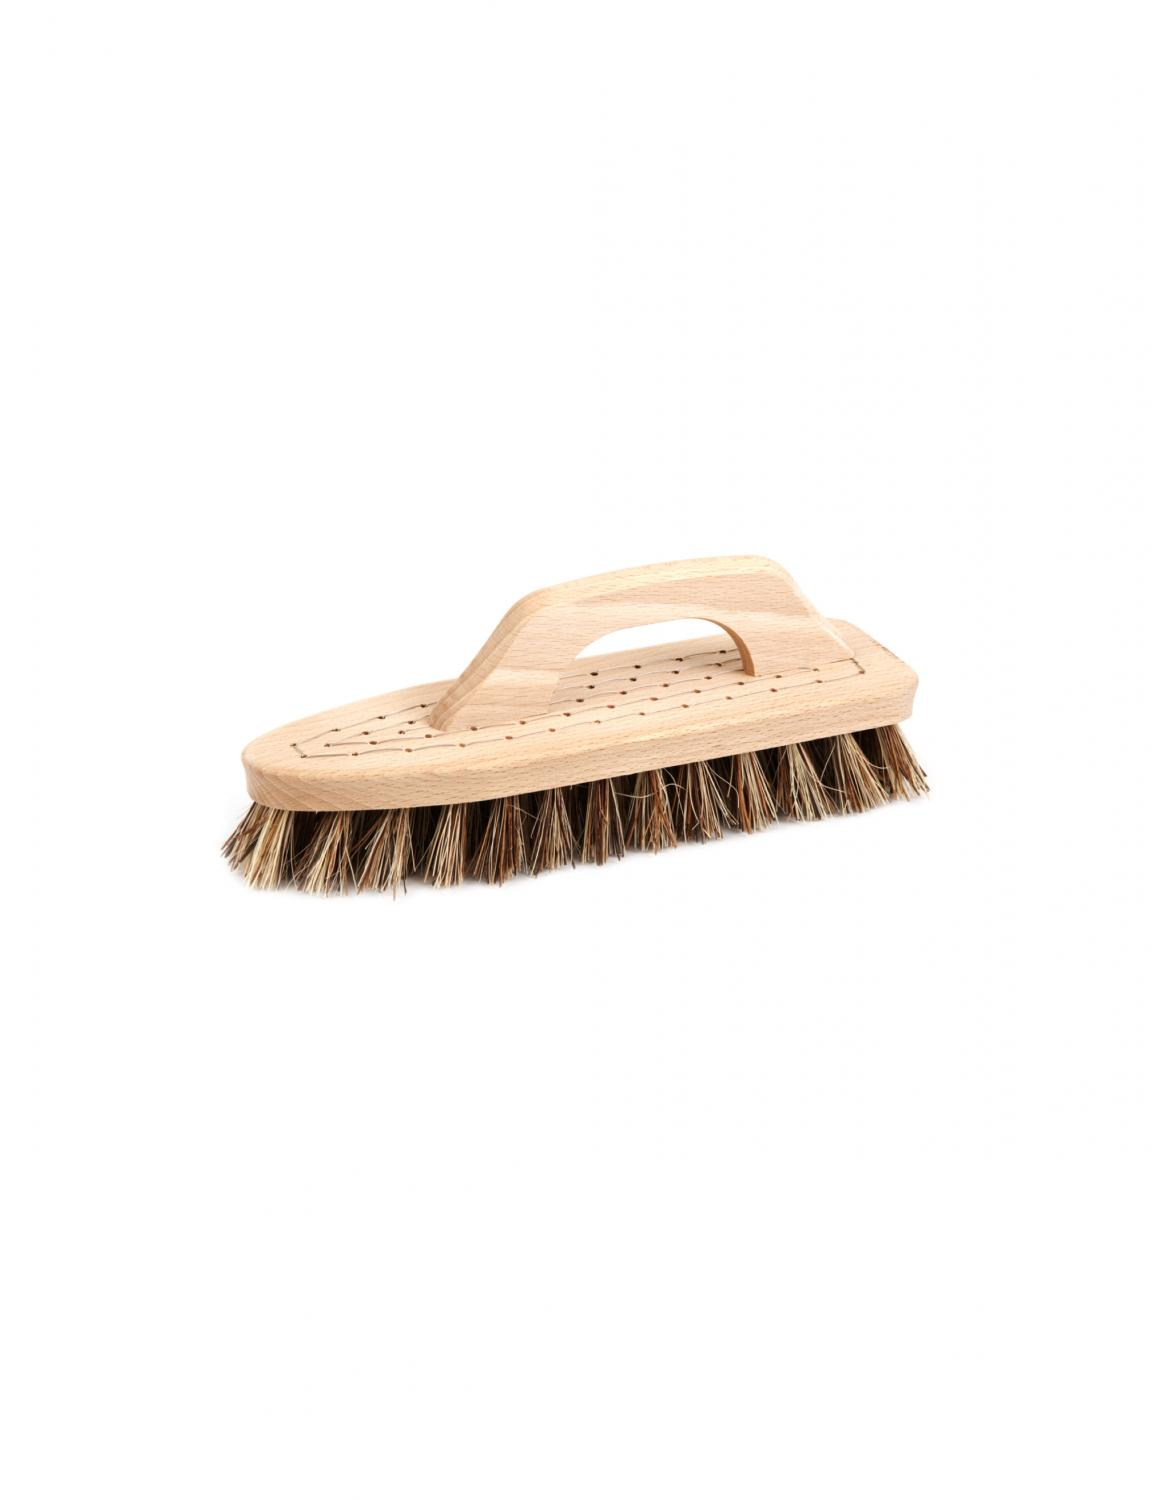 Scrubbing Brush with Handle Union blend